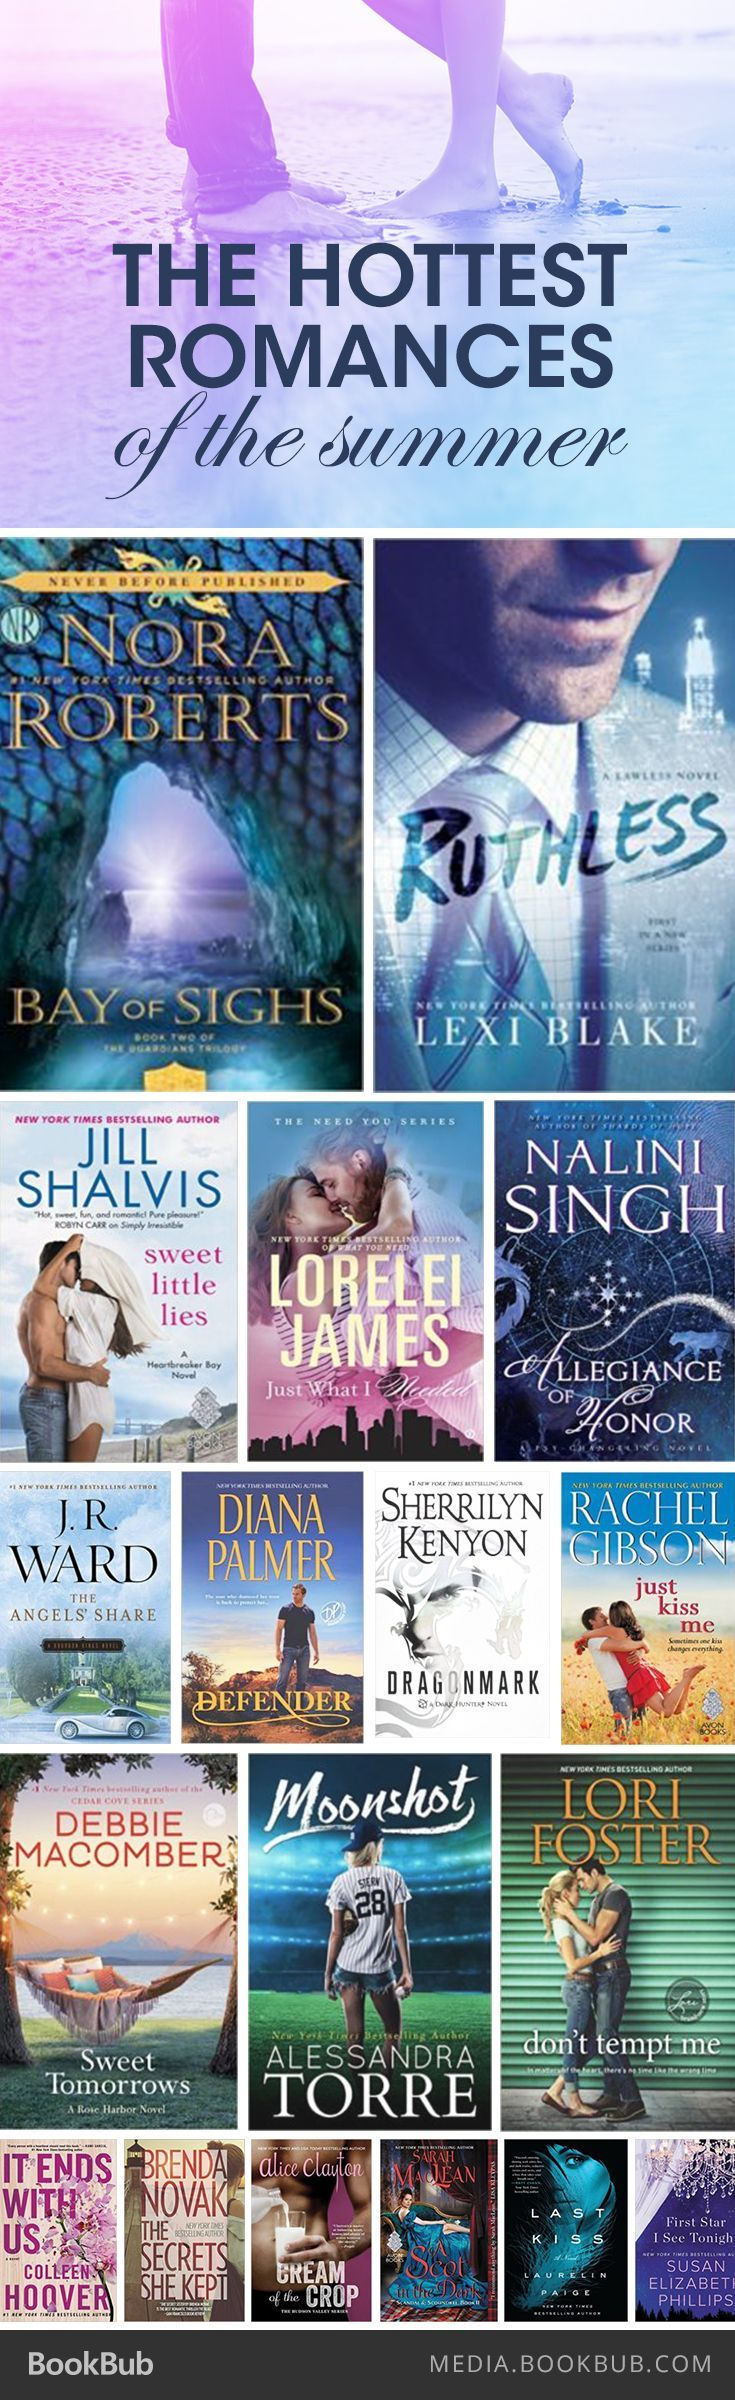 The hottest romance books of the summer, including books from Nora Roberts, Debbie Macomber, Colleen Hoover, and Sarah MacLean.